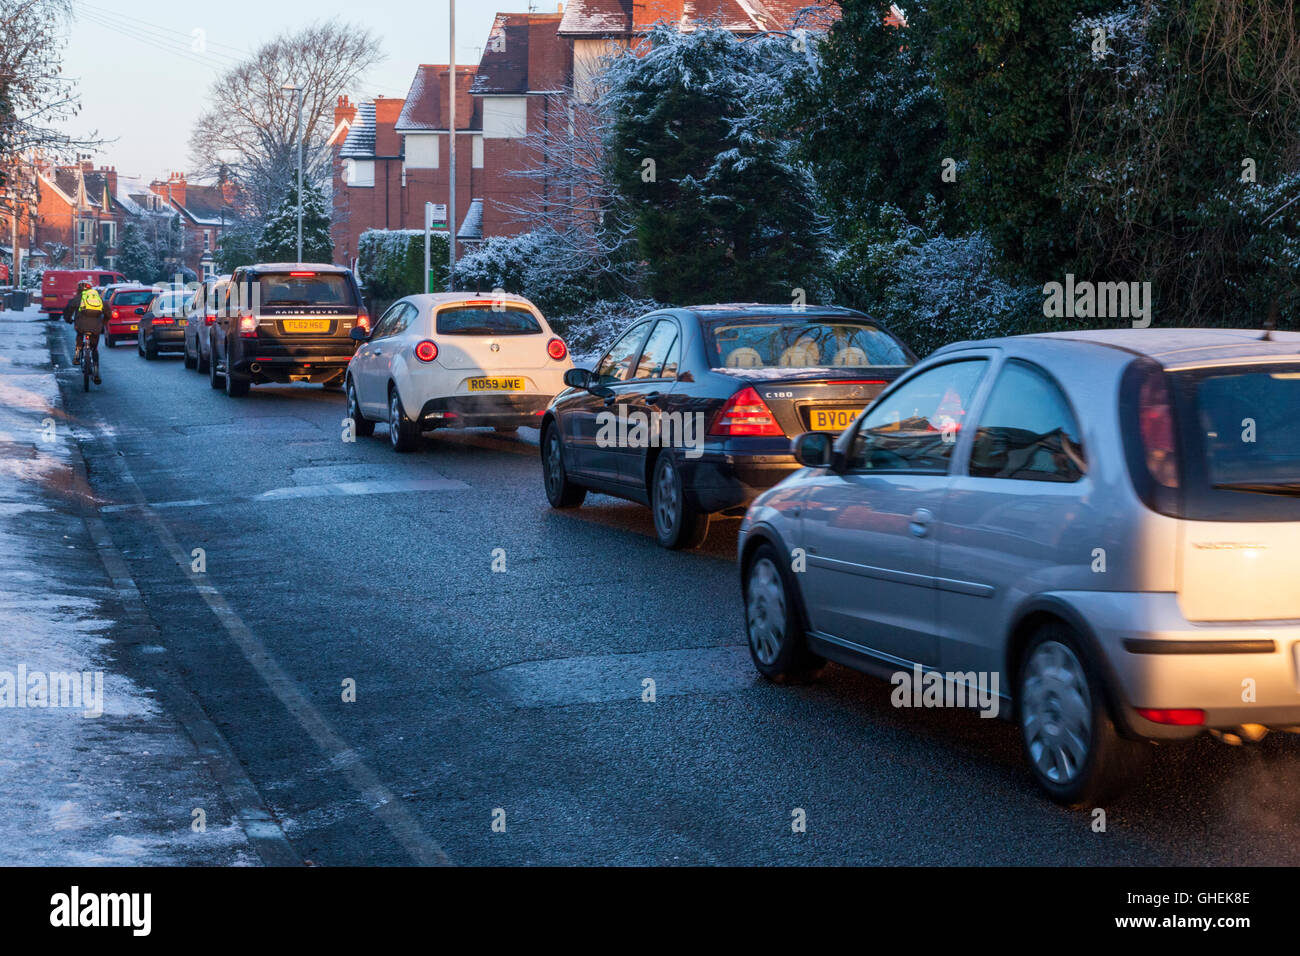 Morning rush hour traffic queueing in Winter in a residential area, Nottinghamshire, England, UK Stock Photo